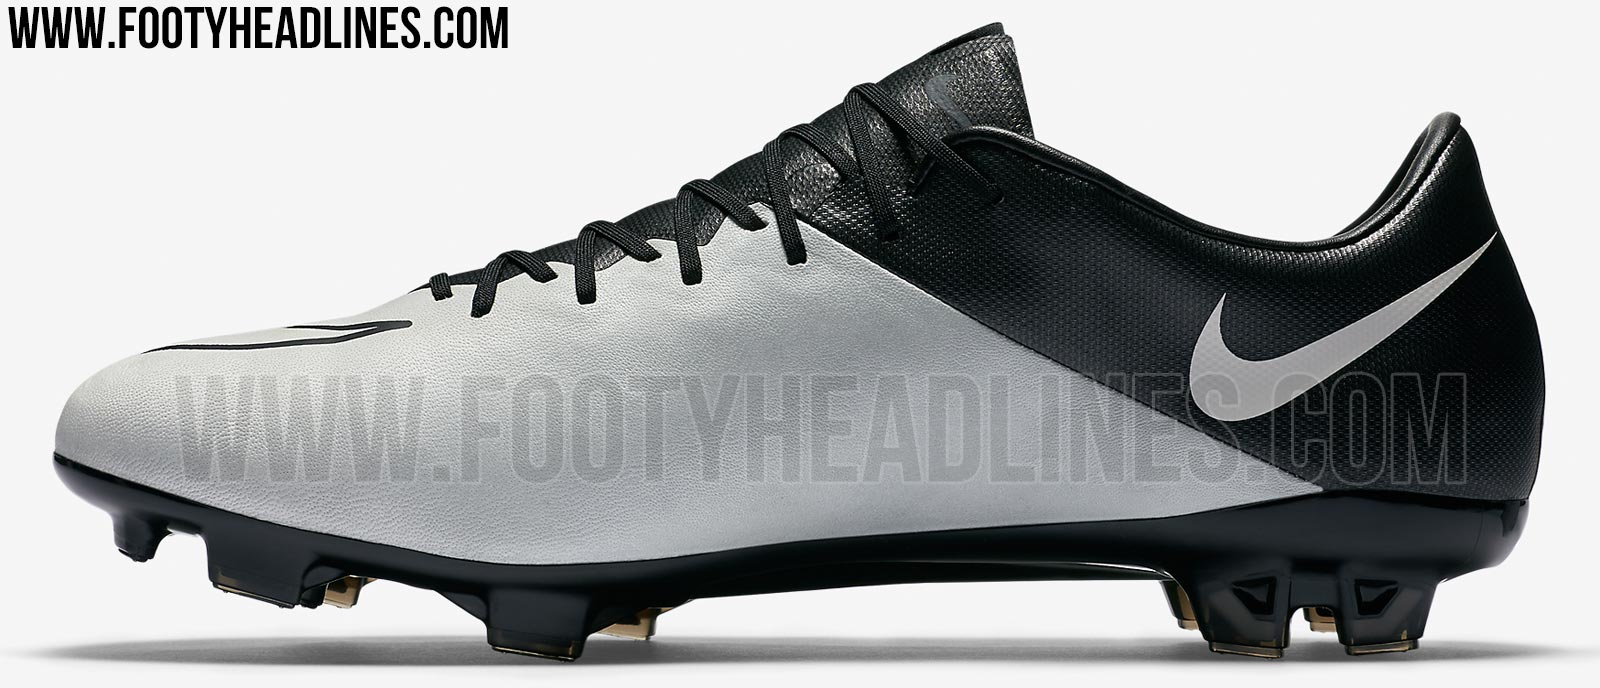 grey black nike mercurial vapor x 2016 leather boots. Black Bedroom Furniture Sets. Home Design Ideas